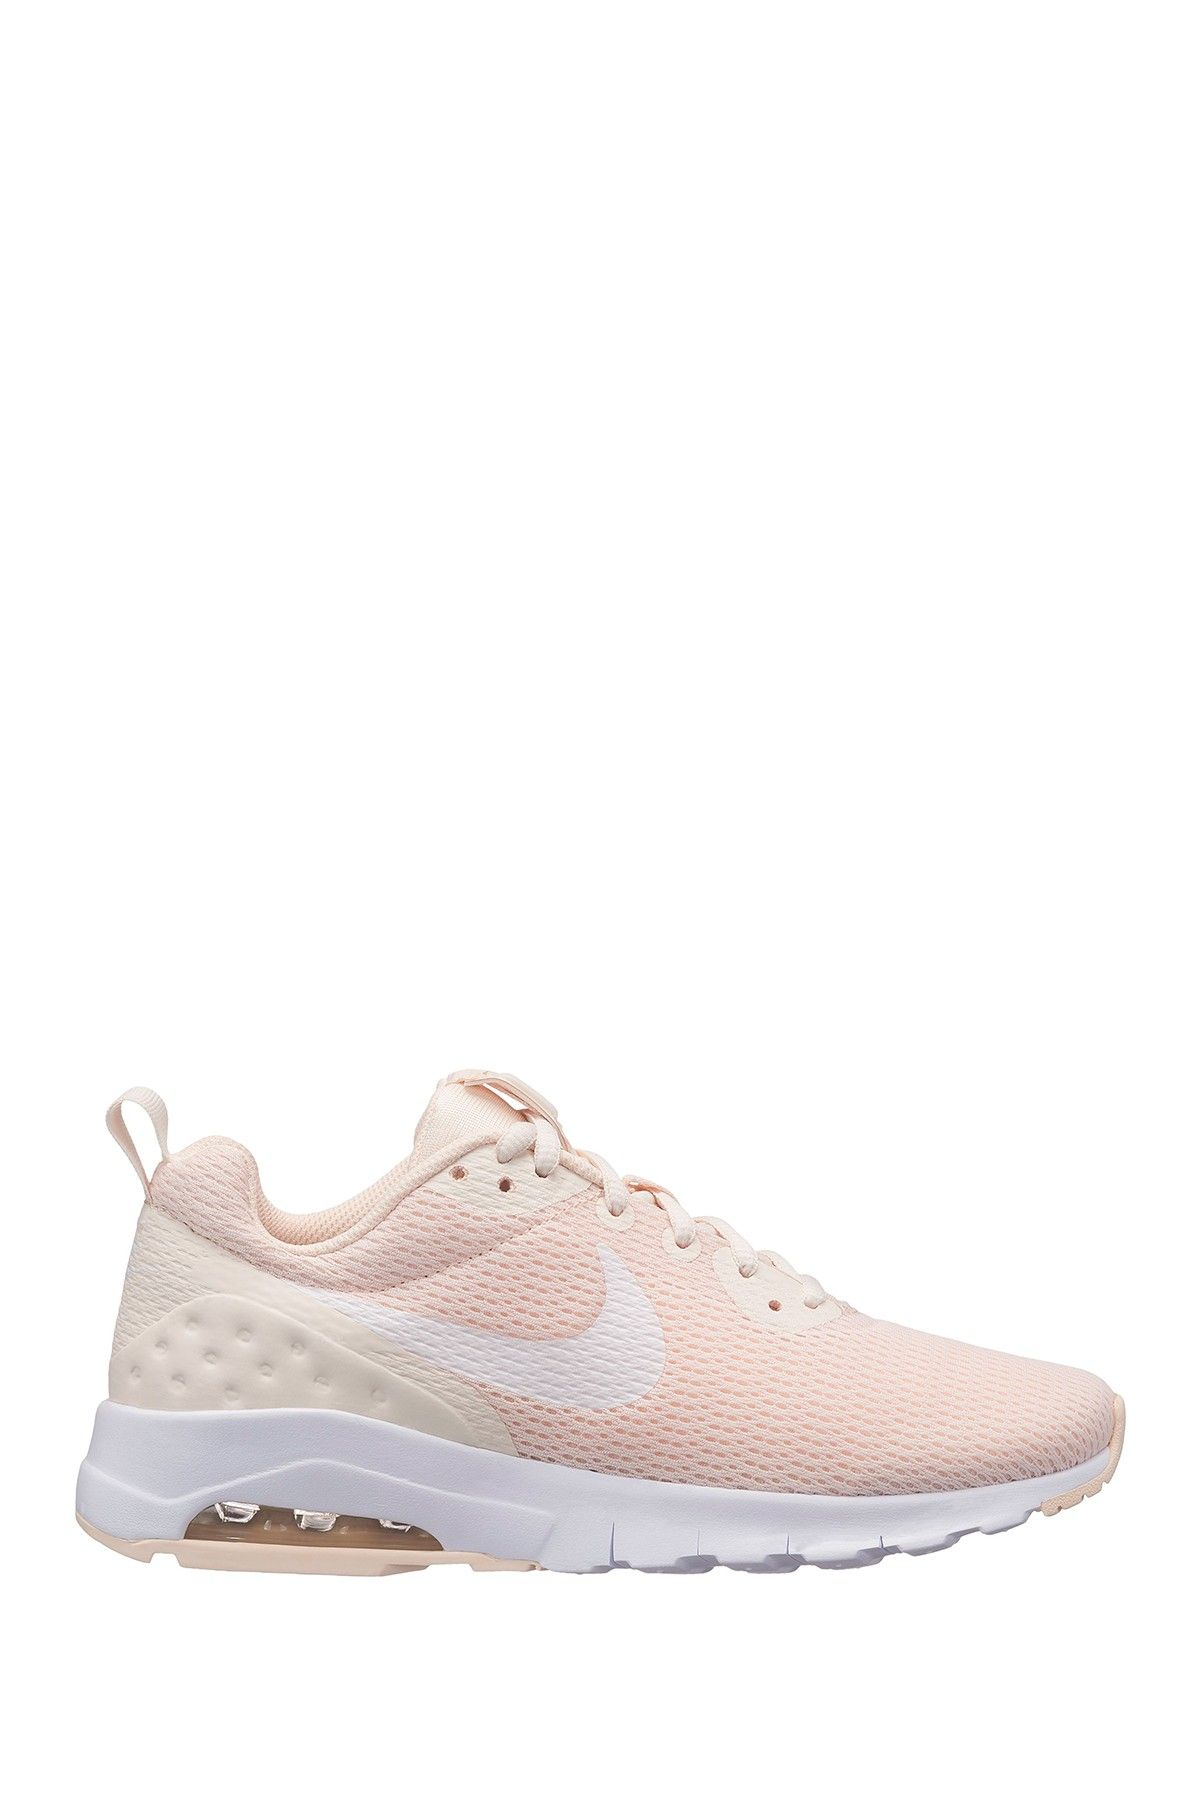 finest selection f8dce 25a91 Image of Nike Air Max Motion LW Sneaker